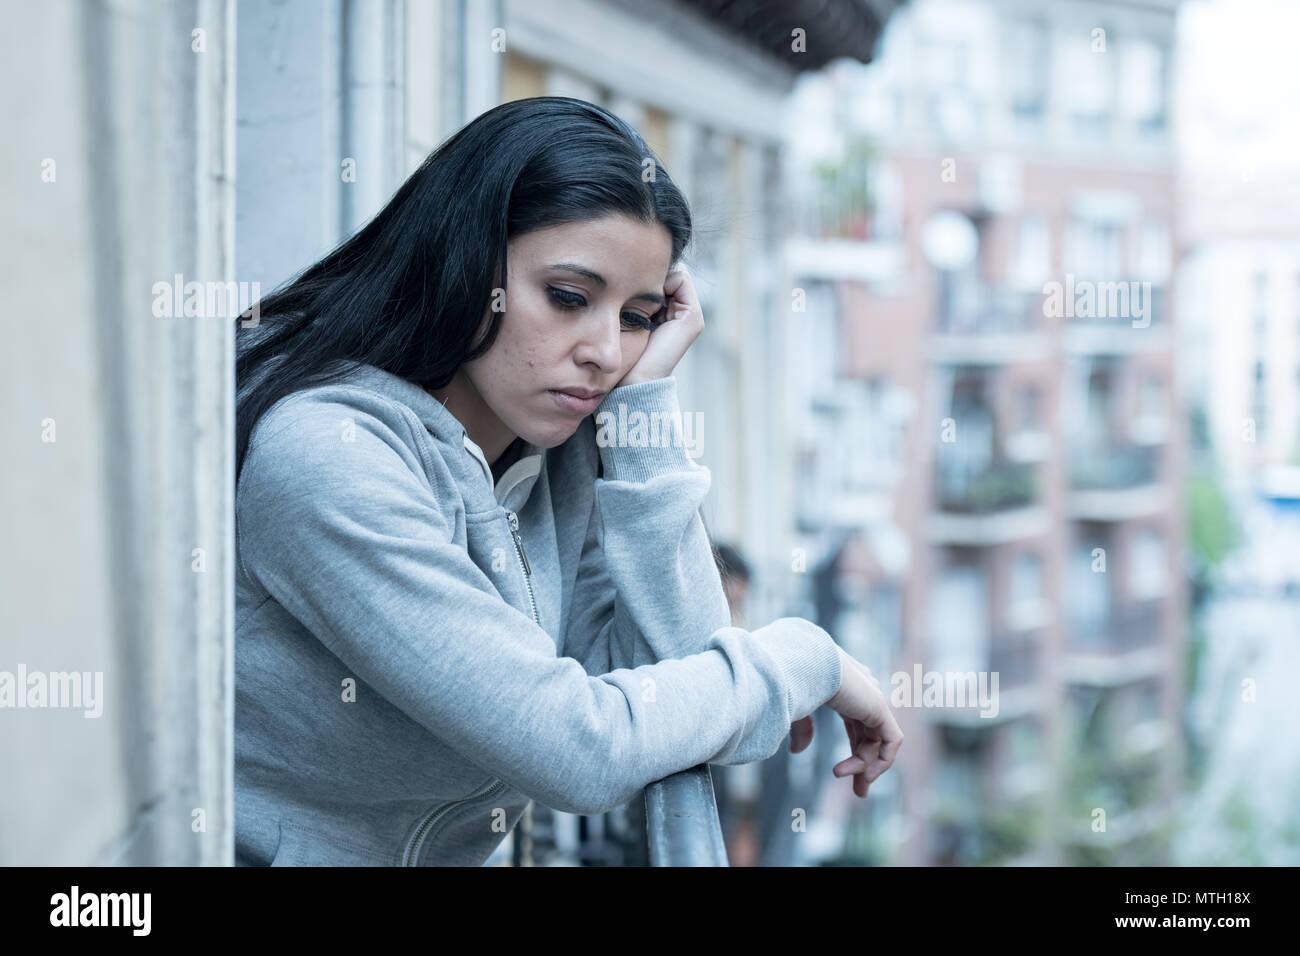 Attractive latin depressed lonely woman staring out feeling sad, pain, grief on a balcony at home. Crisis, depression and mental health concept - Stock Image